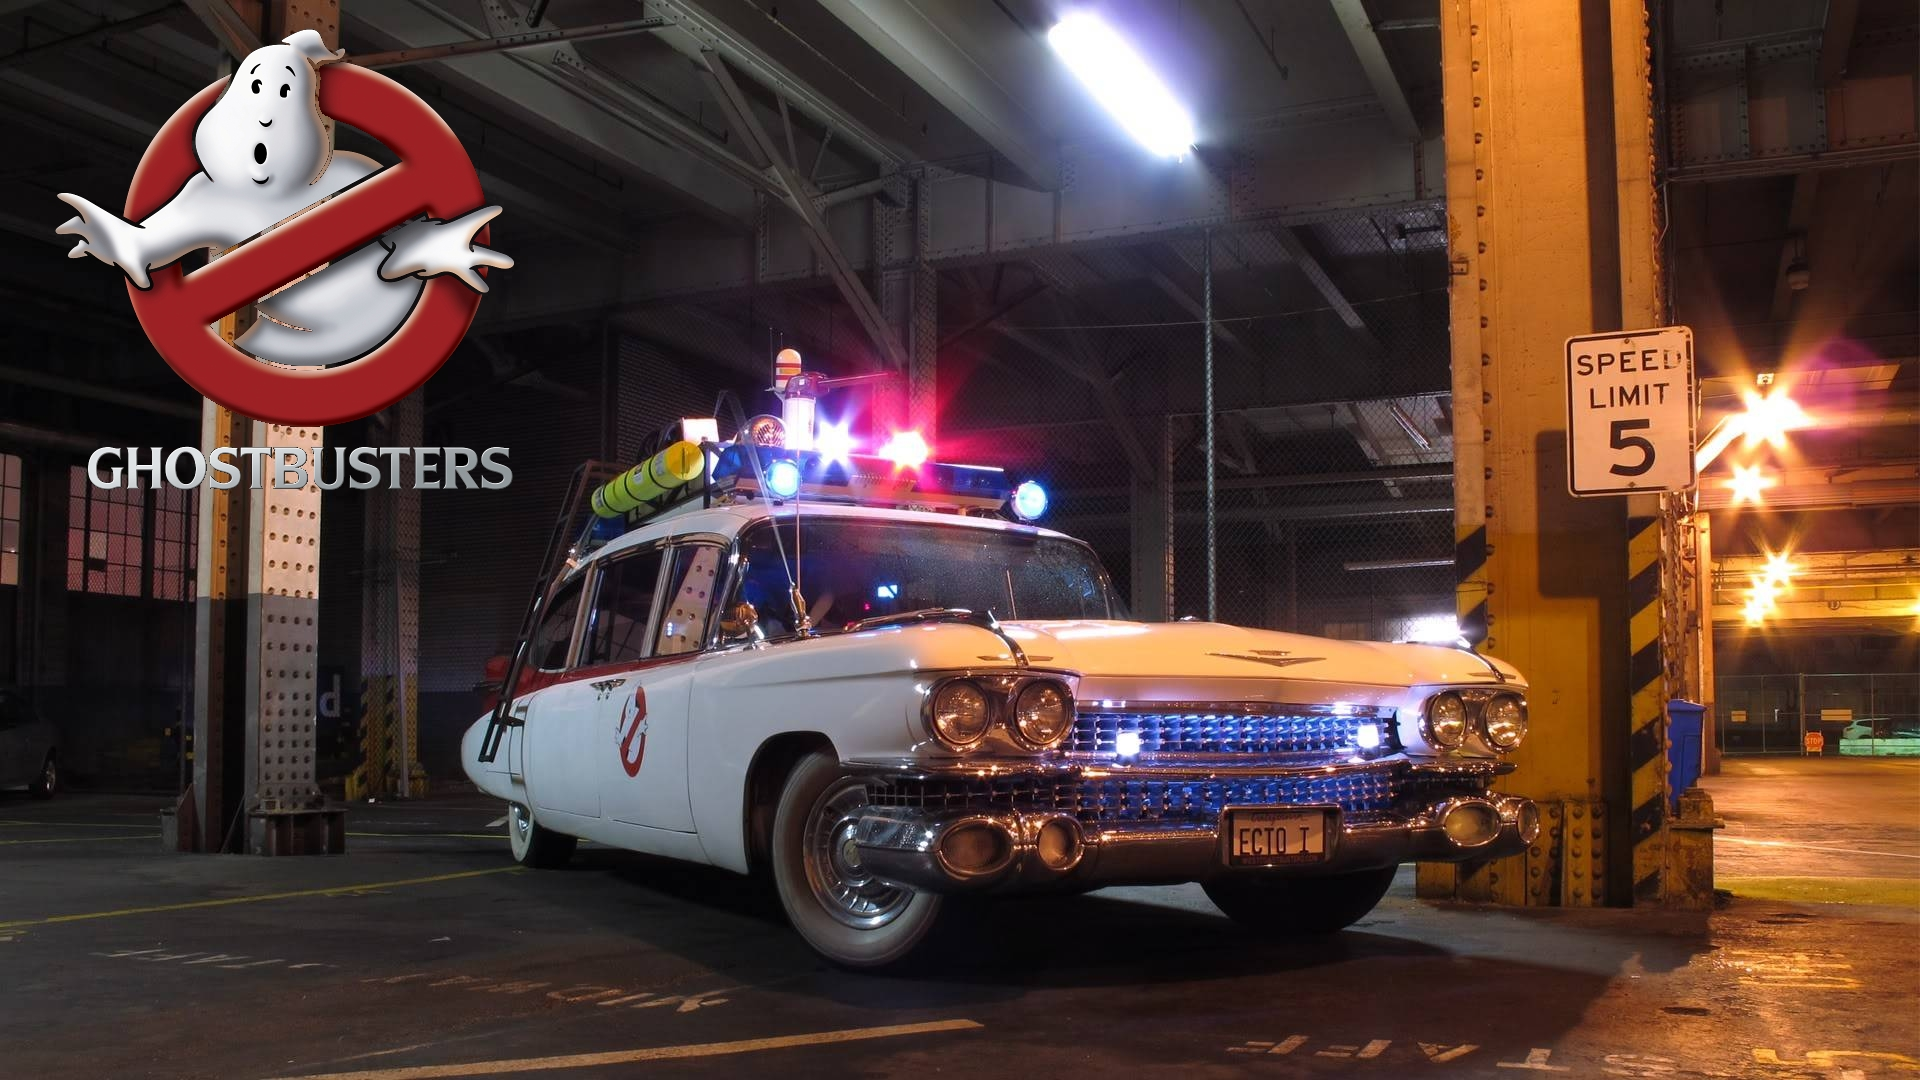 'Ghostbusters' Reboot On the Way, What about 'Ghostbusters 3'?